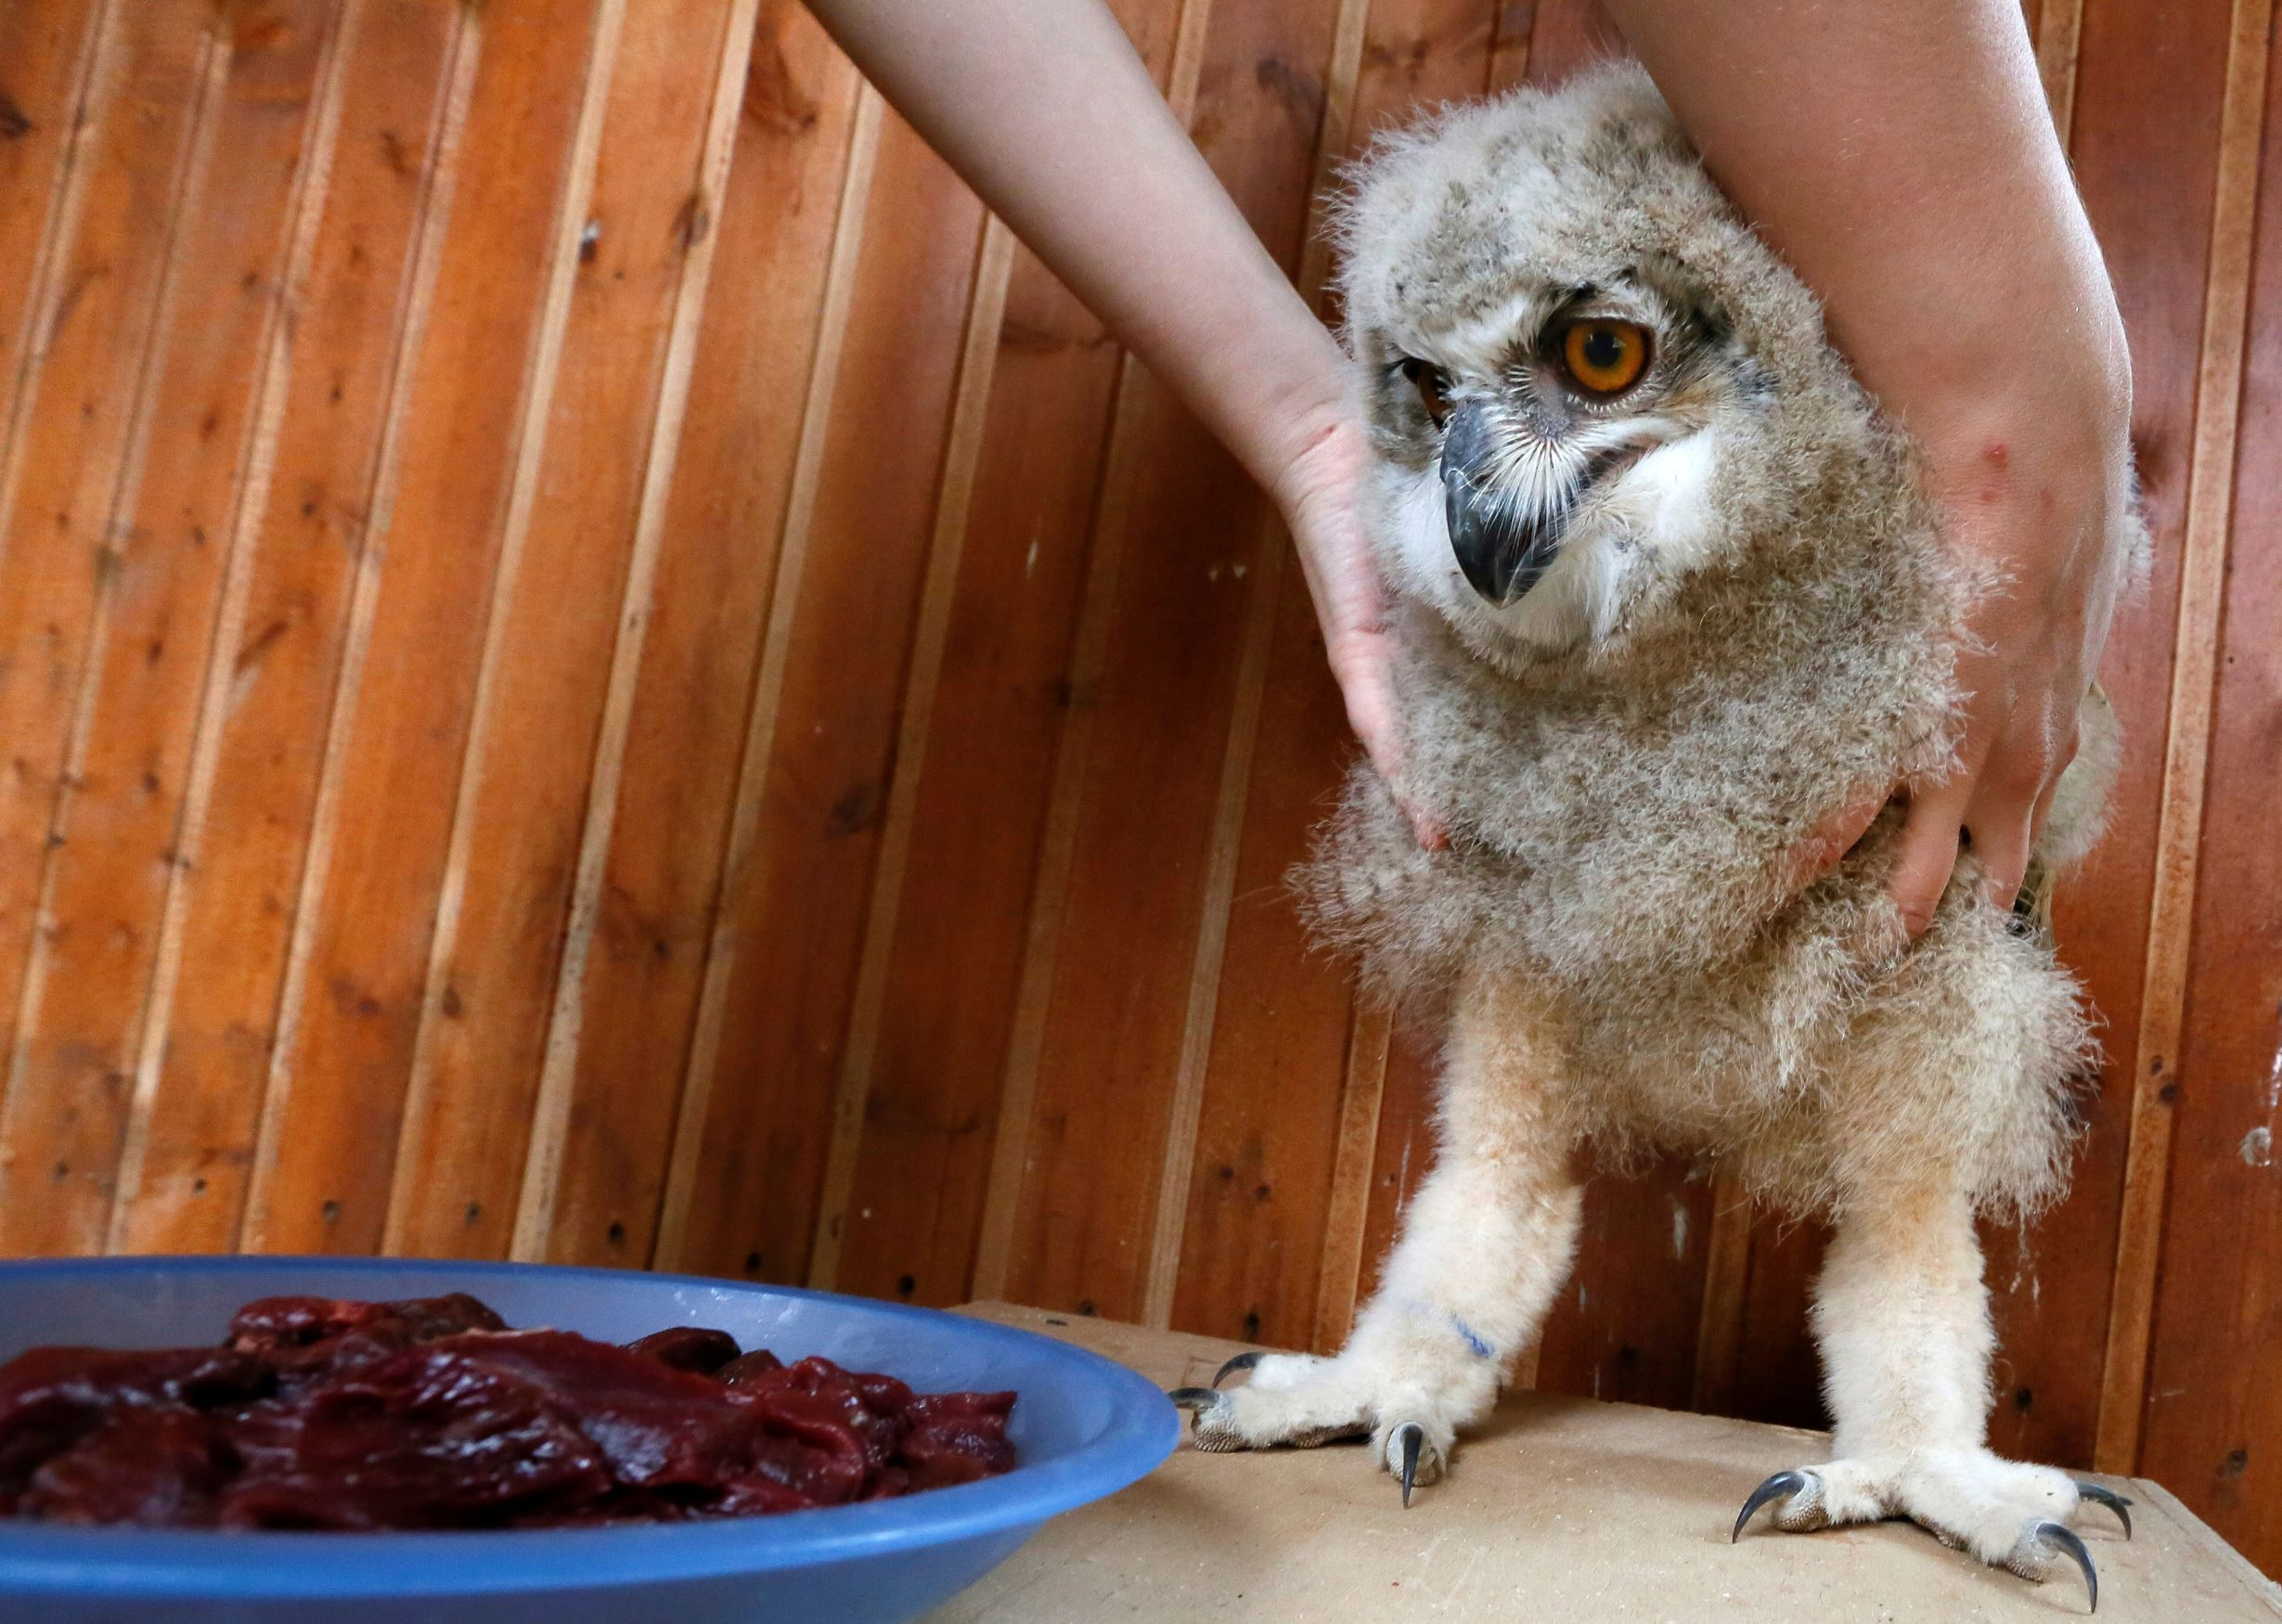 Слайд 34 из 67: A zoo employee feeds a 3-week-old Eurasian eagle owl at the Royev Ruchey zoo on the suburbs of the Siberian city of Krasnoyarsk, Russia June 7, 2016.